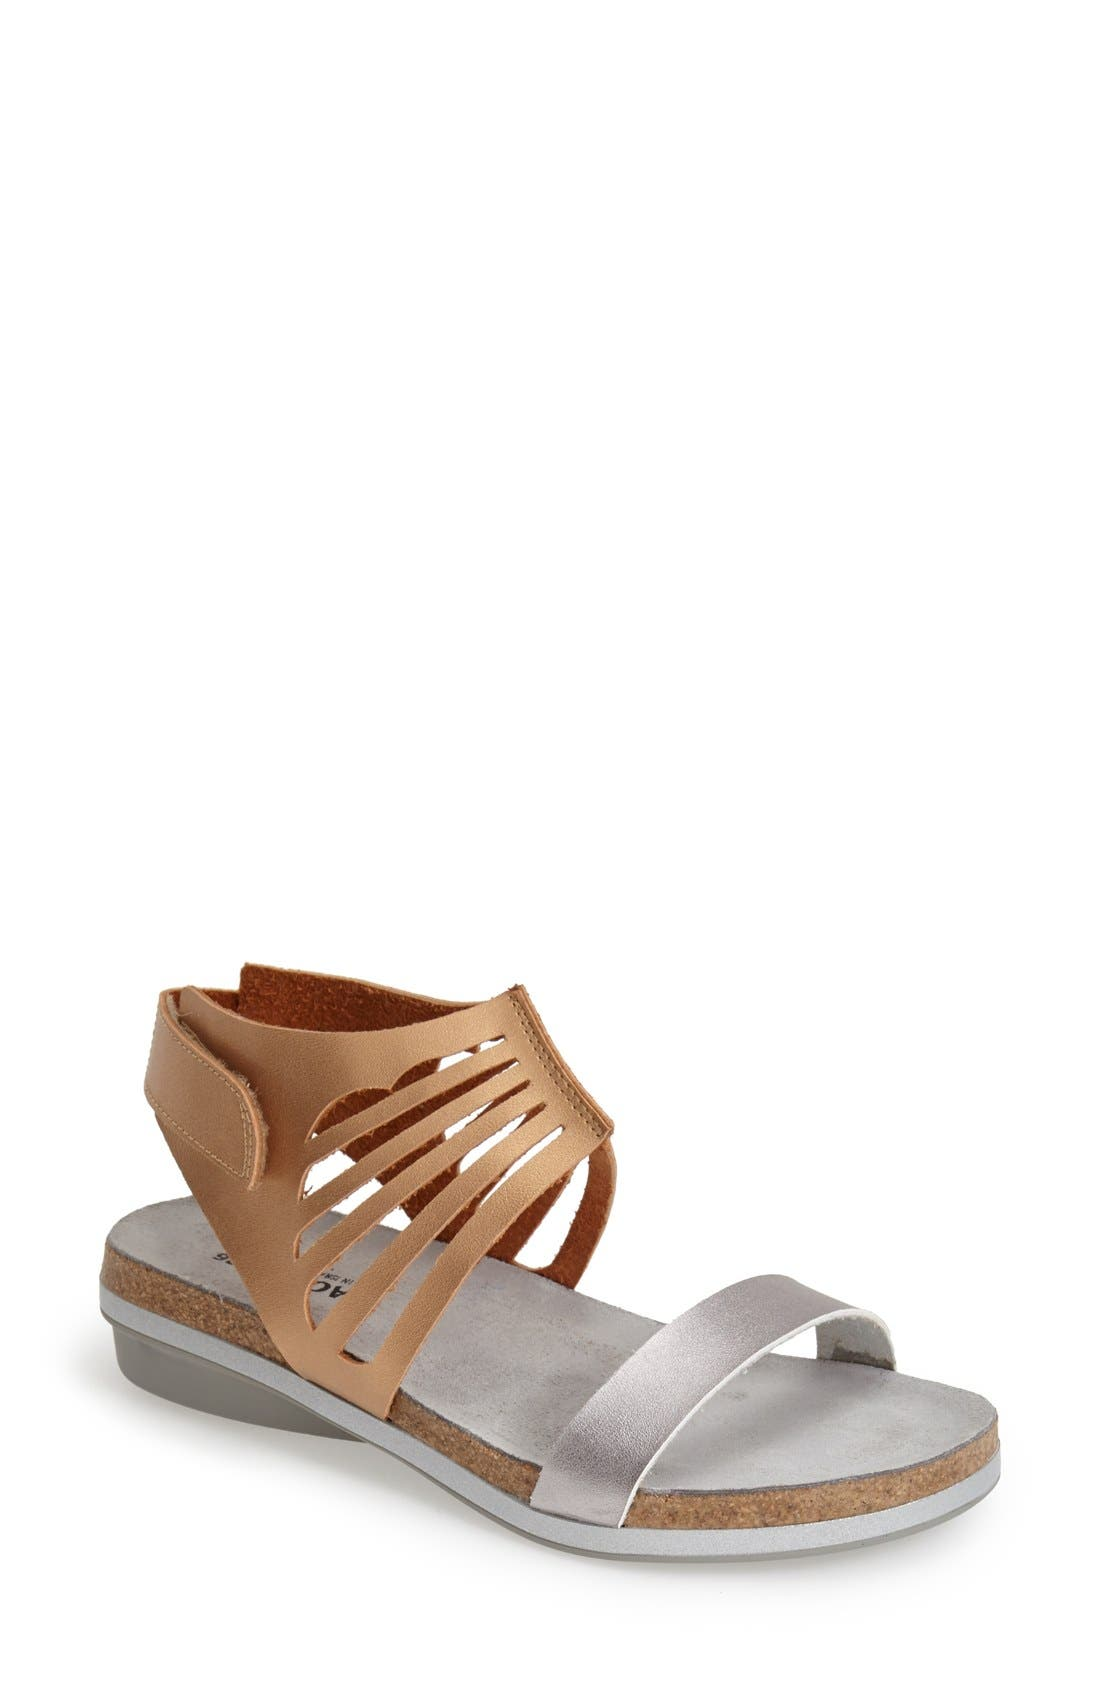 Alternate Image 1 Selected - Naot 'Mint' Sandal (Women)